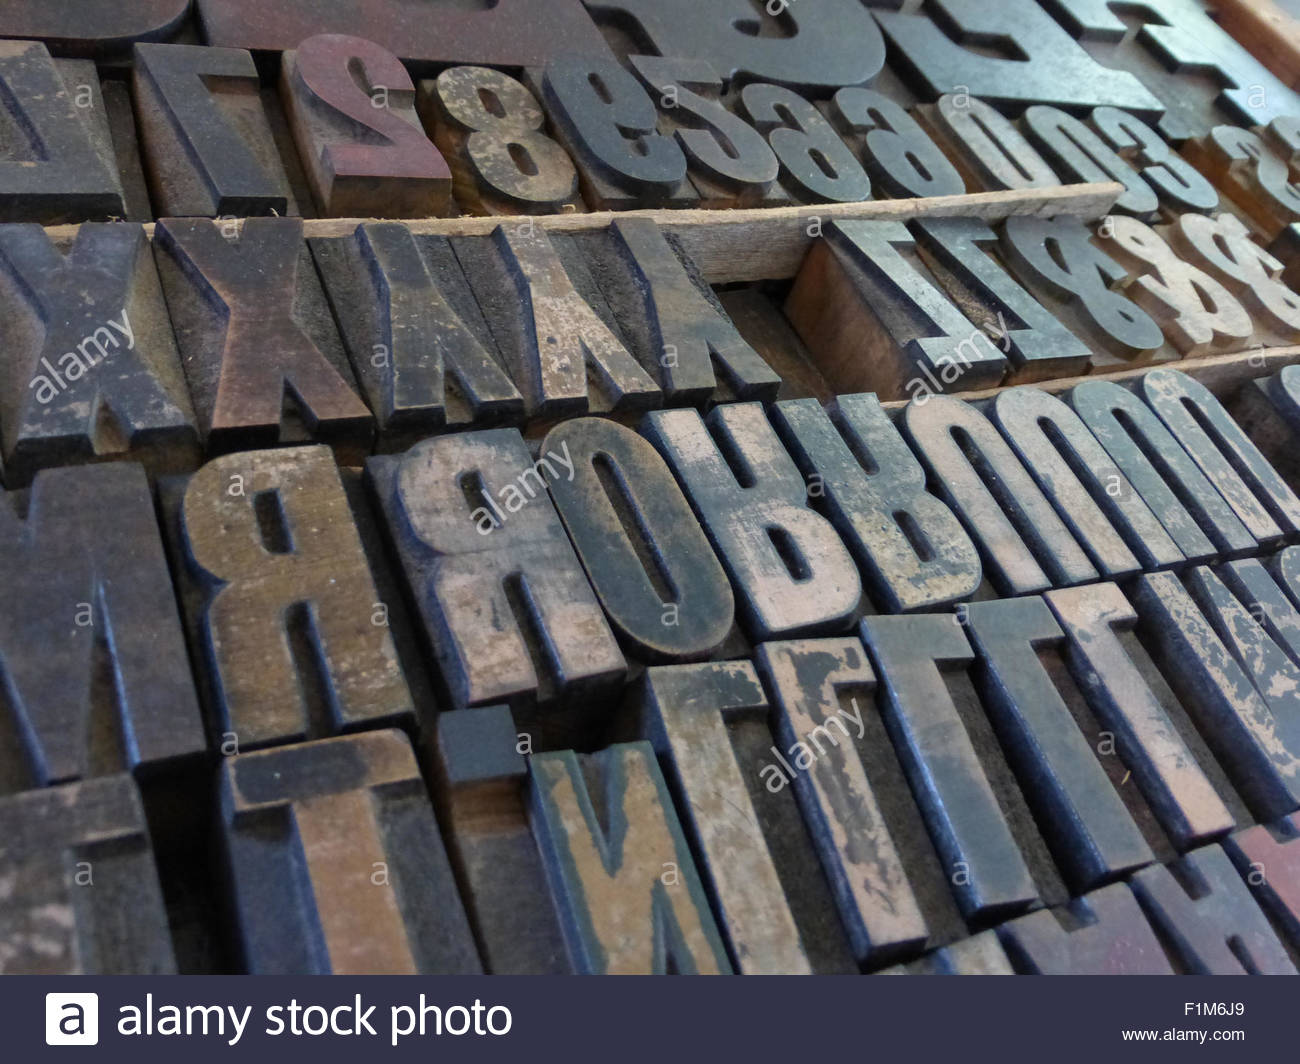 Metal Block Letters Medium Close Up Of Large Metal Movable Type Block Letters Used In